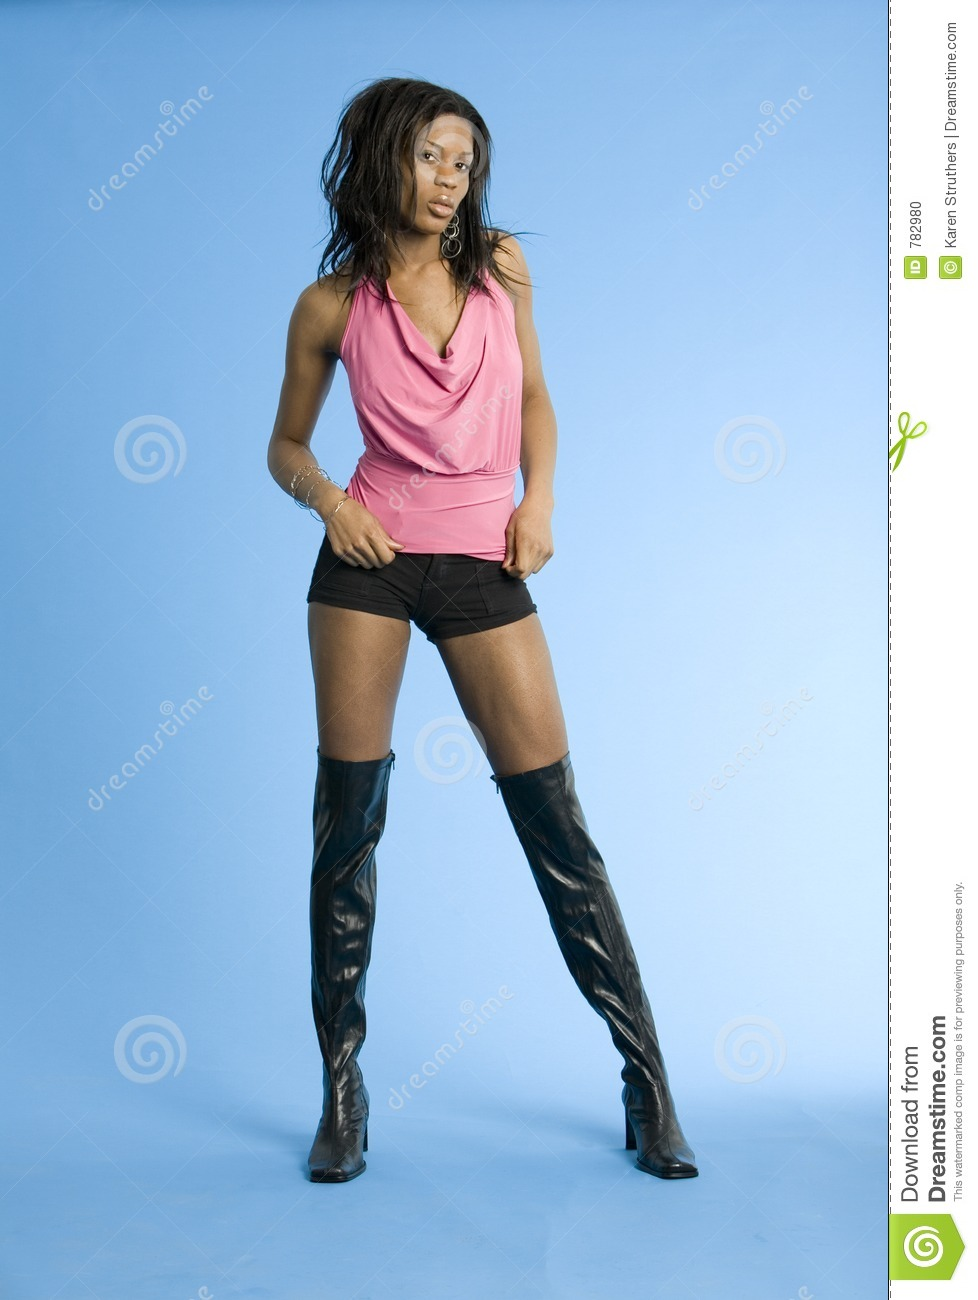 Sexy girl in boots